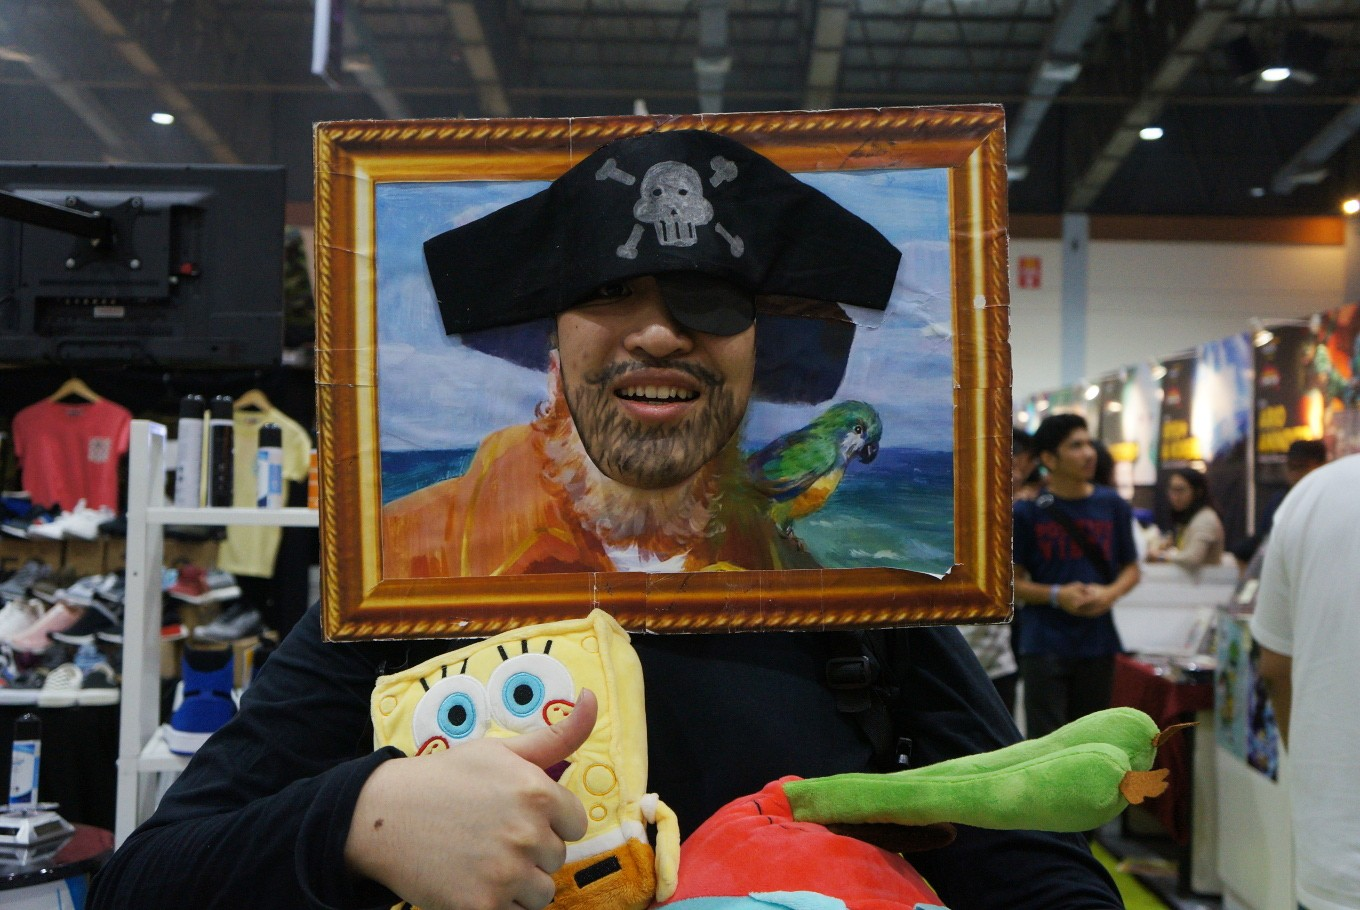 A cosplayer poses as Painty the Pirate or Captain from Nickelodeon's 'SpongeBob SquarePants.'